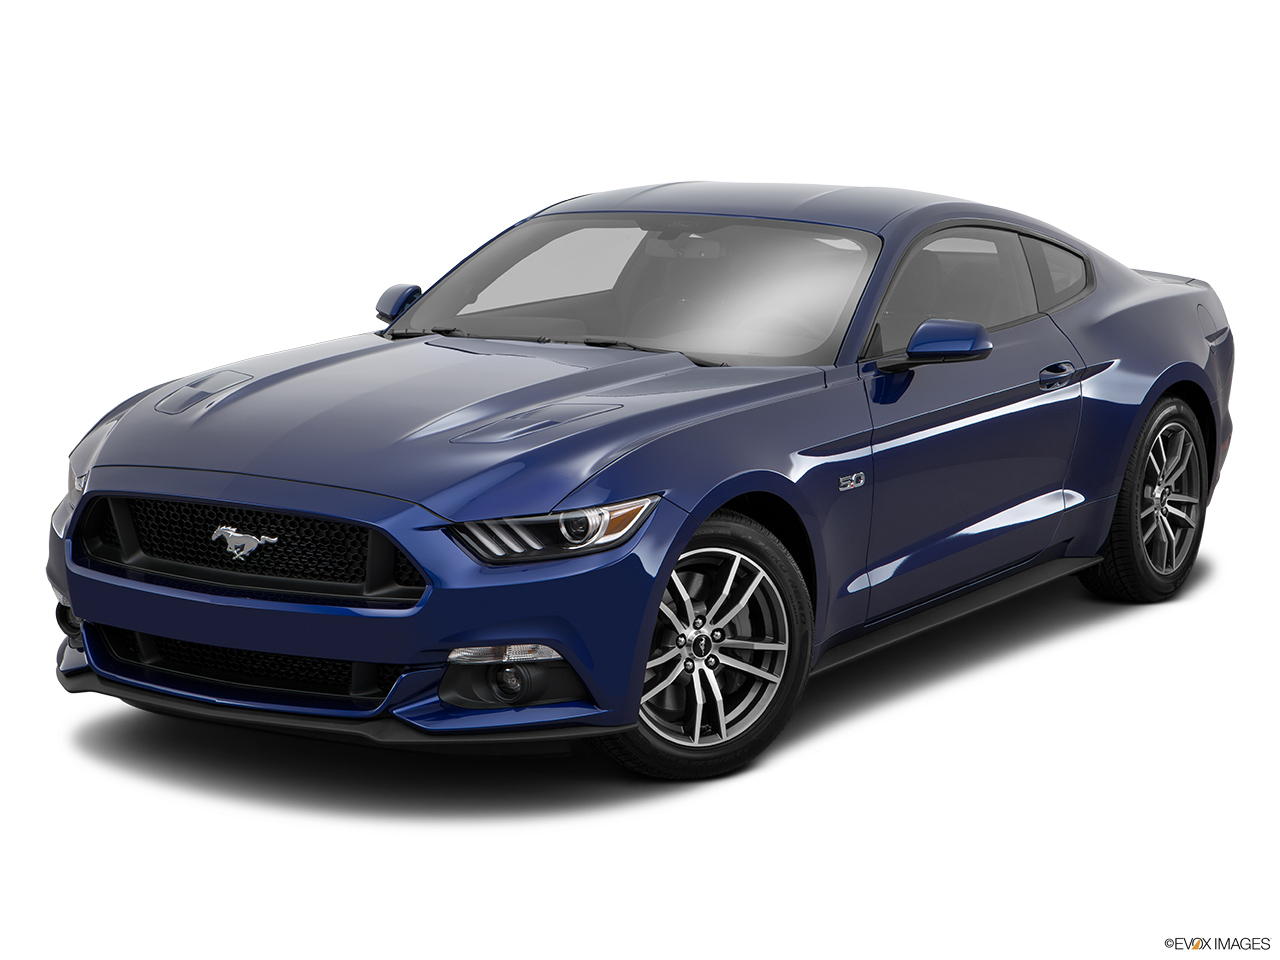 ford mustang 2016 5 0l gt coupe in uae new car prices. Black Bedroom Furniture Sets. Home Design Ideas